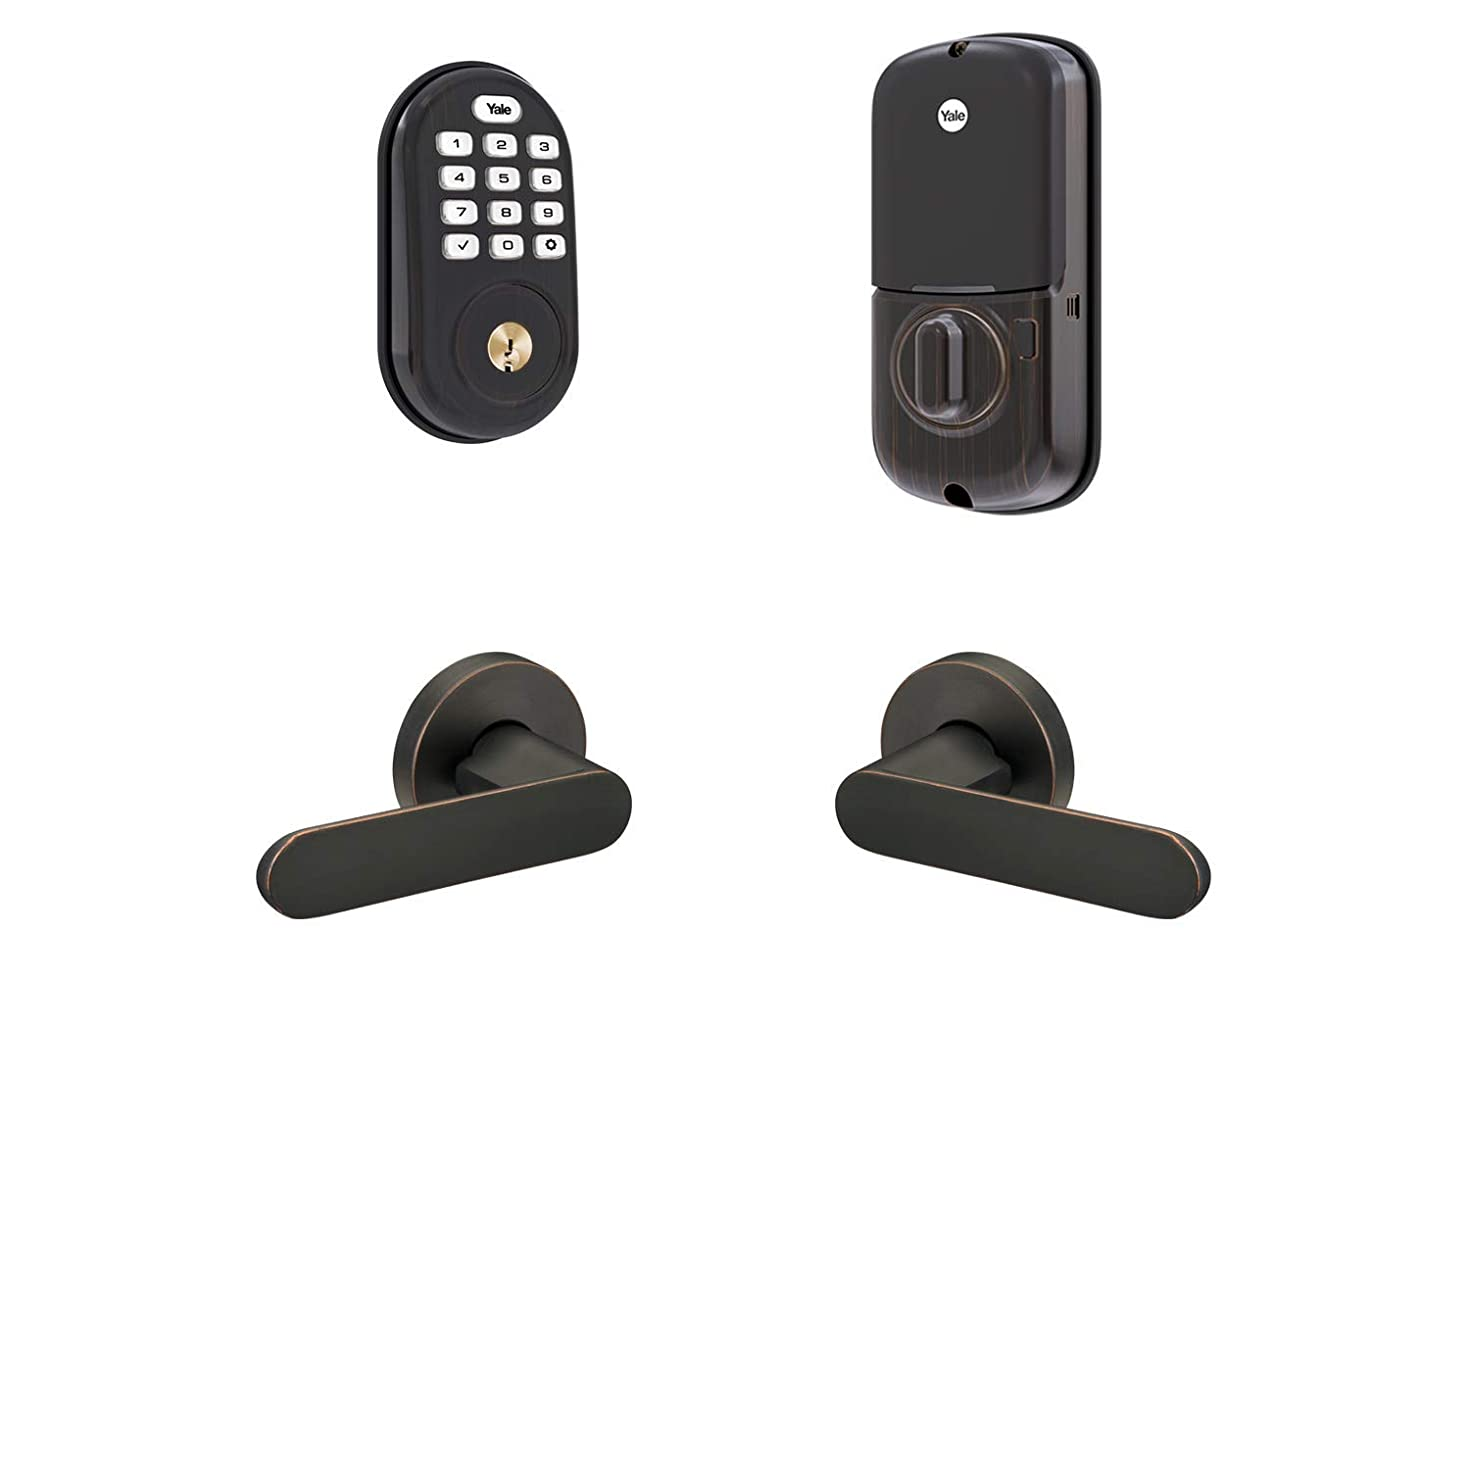 Yale Security B-YRD216-NR-KC-0BP Yale Assure Lock Kincaid Keypad Deadbolt with Matching Lever Smart Module), Oil-Rubbed Bronze